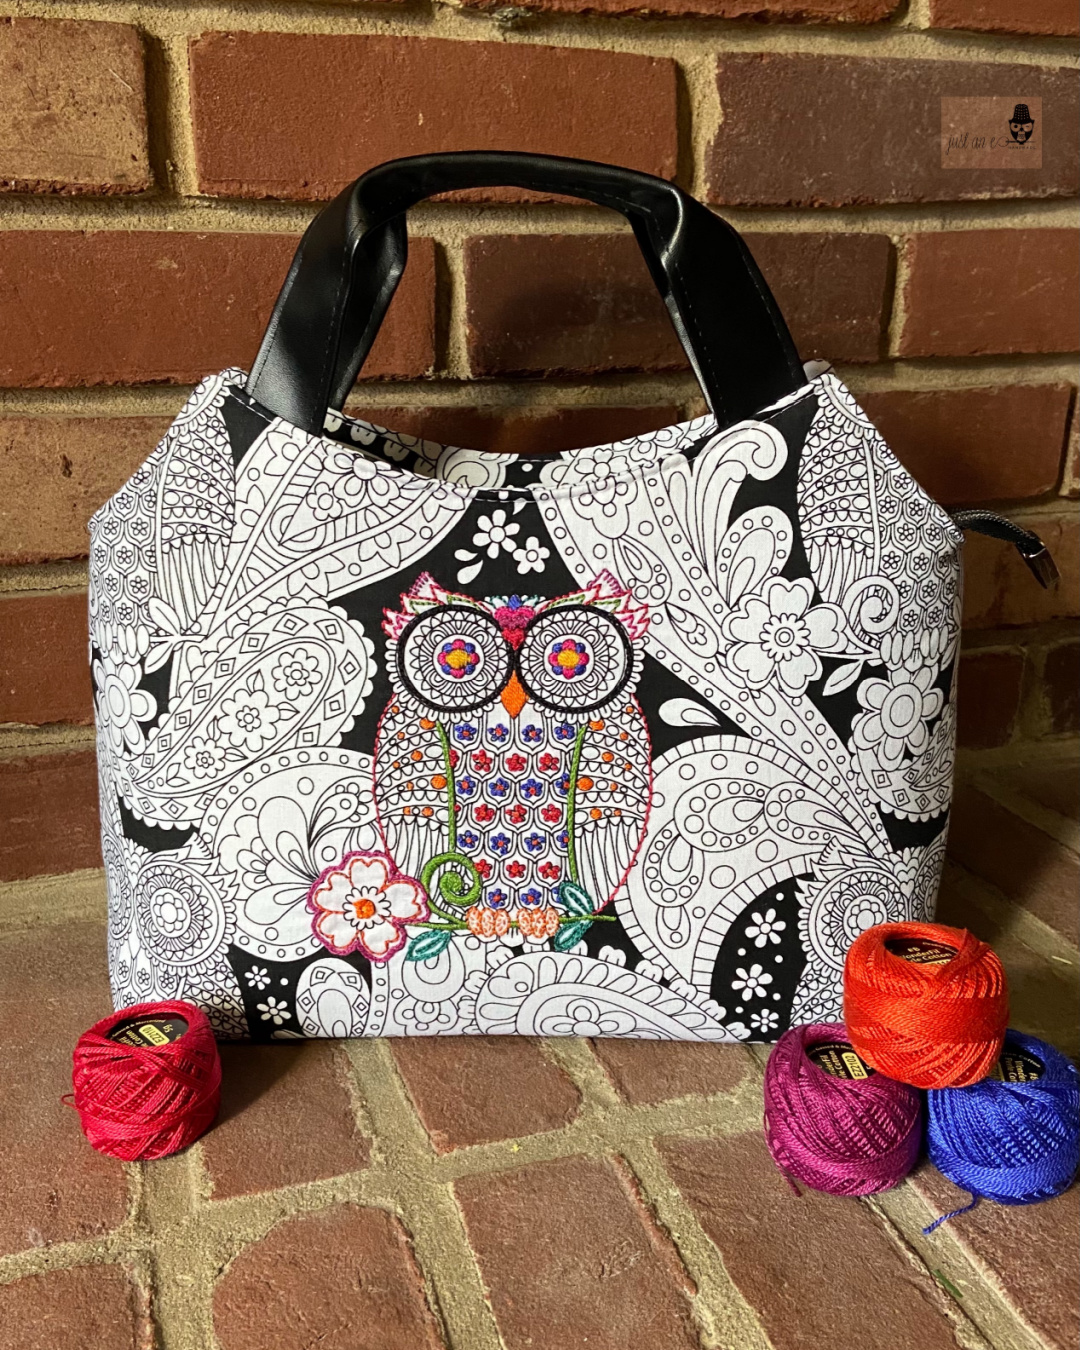 The Hope Handbag from Sewing Patterns by Mrs H, made by Abbe of Just an E